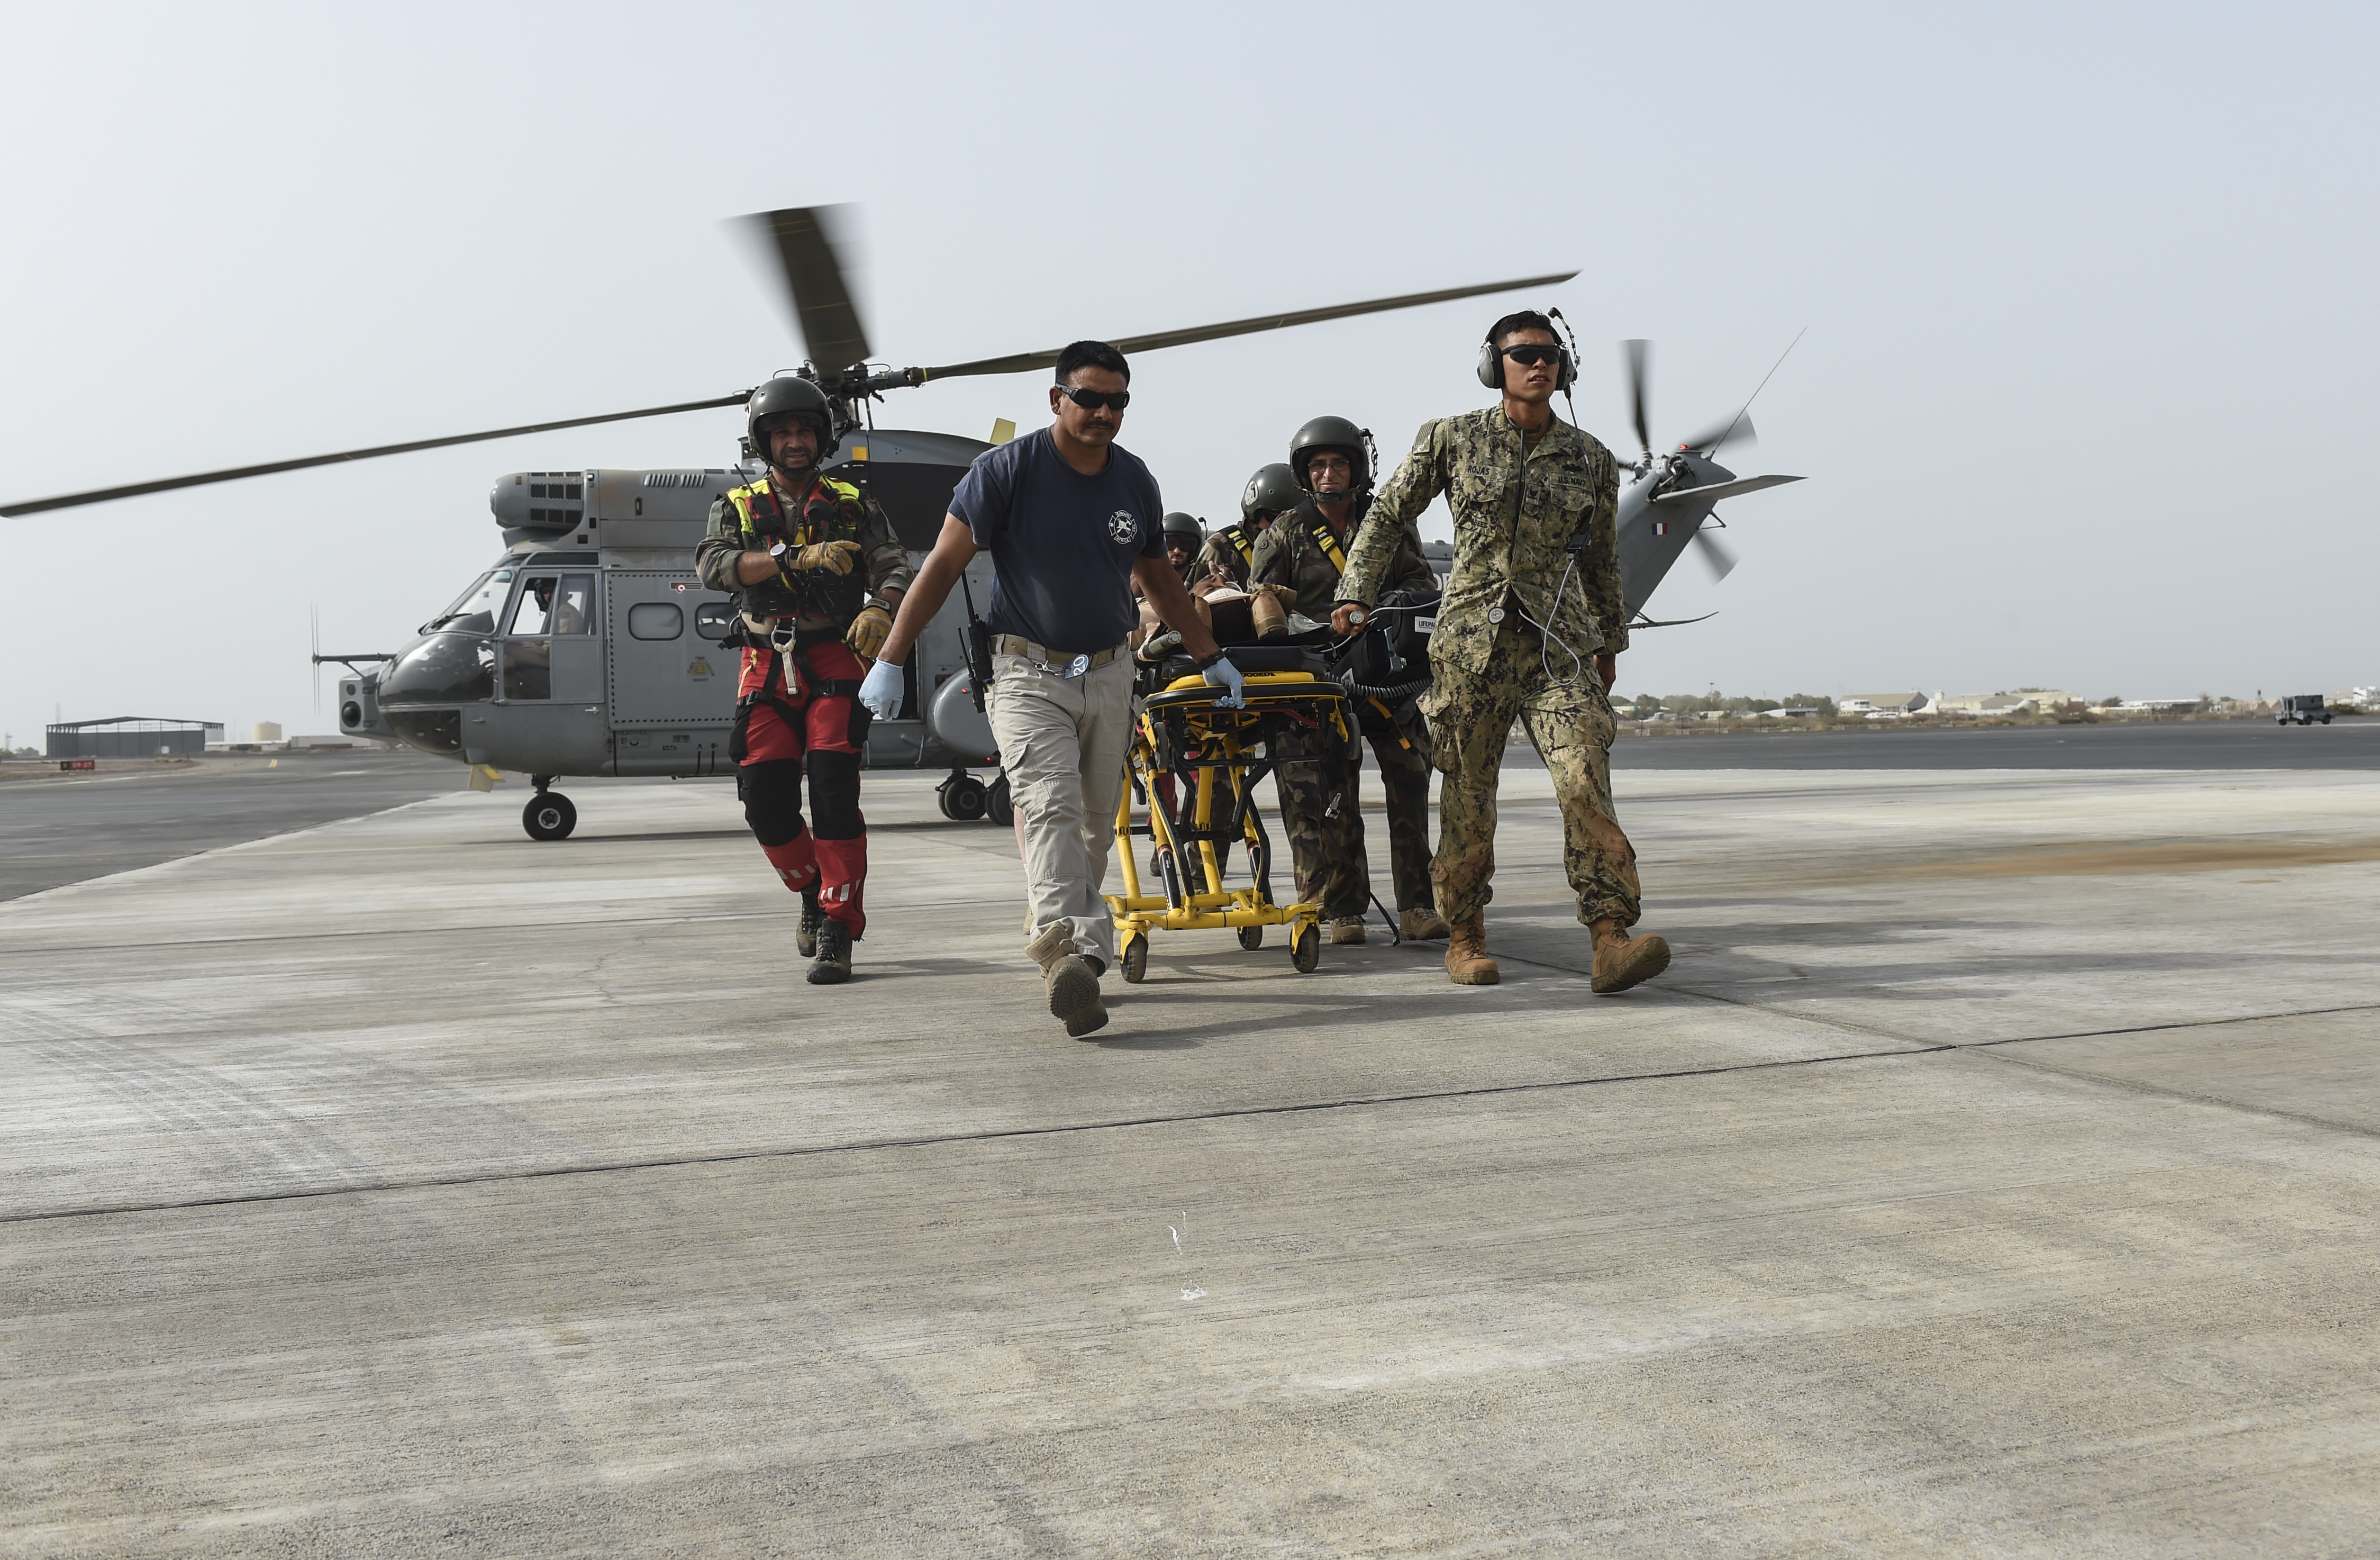 U.S. Navy Hospital Corpsman 3rd Class David Rojas from the Naval Mobile Construction Battalion One, a maneuver unit of the Combined Joint Task Force-Horn of Africa, along with emergency medical services personnel and members  of the French Air Force  Tactical Airlift Squadron 88, transport a patient from a SA 330 Puma helicopter across the flightline, during a bilateral exercise with French forces at Camp Lemonnier, July 20, 2017. CJTF-HOA partners with French counterparts to strengthen regional cooperation and interoperability, enhancing the mutual ability to conduct operations in the region. (U.S. Air Force photo by Staff Sgt. Eboni Prince)